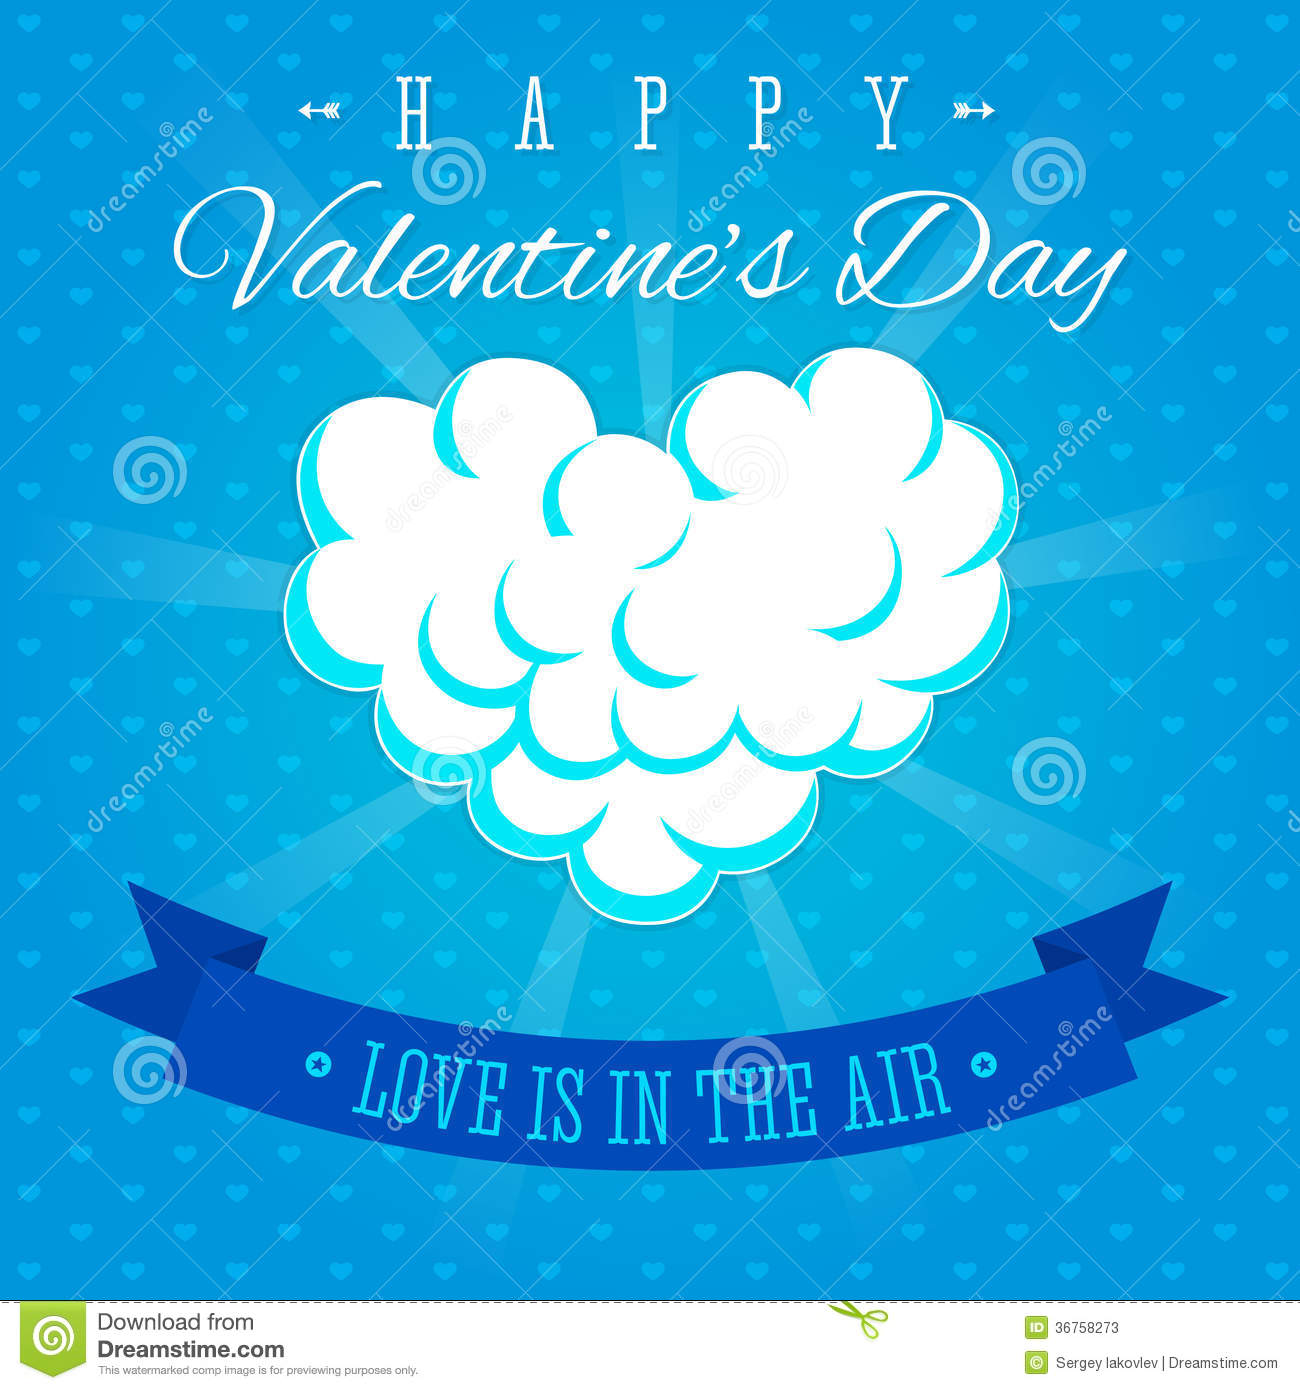 Valentines Day Love Is In The Air Greeting Card Stock ...